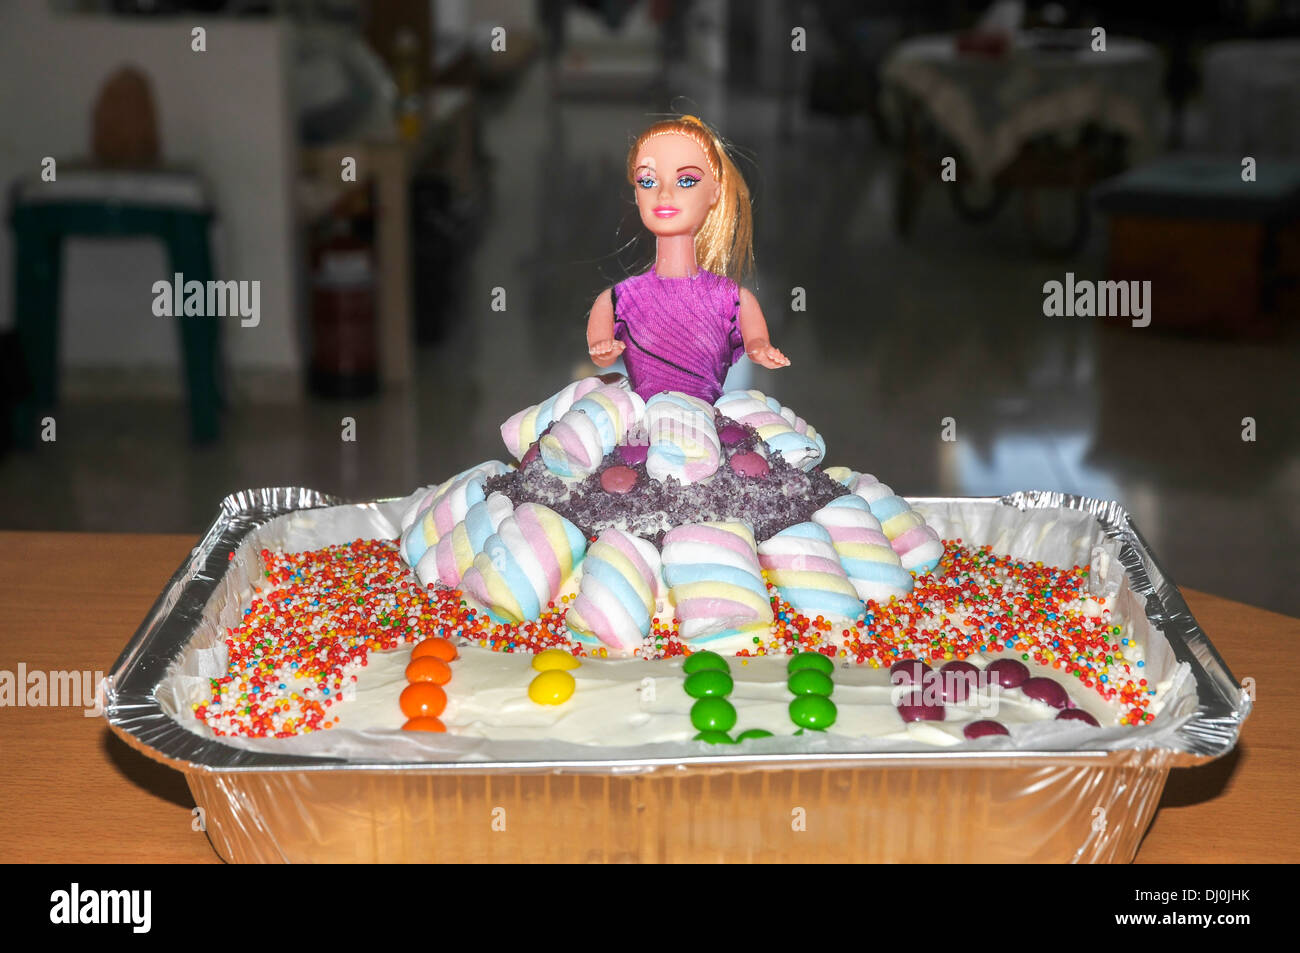 Enjoyable Barbie Doll Birthday Cake Decorated With Smarties And Hundreds And Funny Birthday Cards Online Alyptdamsfinfo